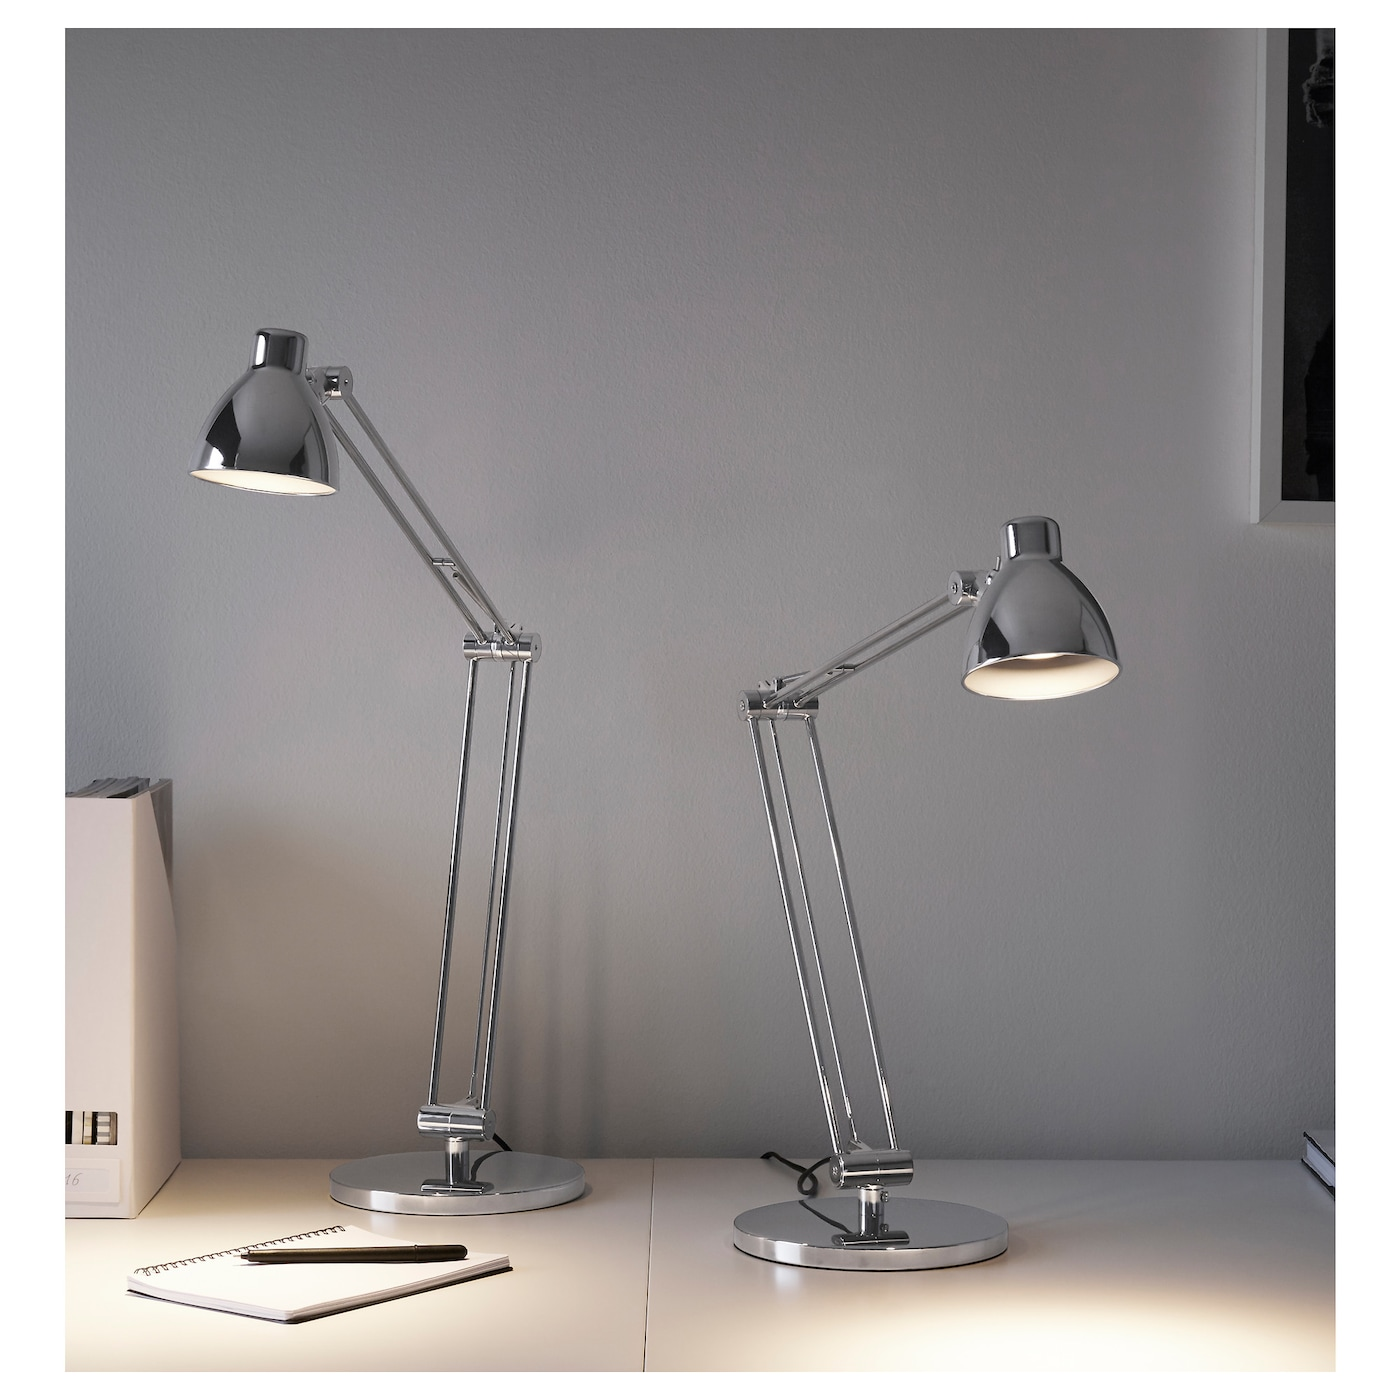 IKEA ANTIFONI work lamp Provides a directed light that is great for reading.